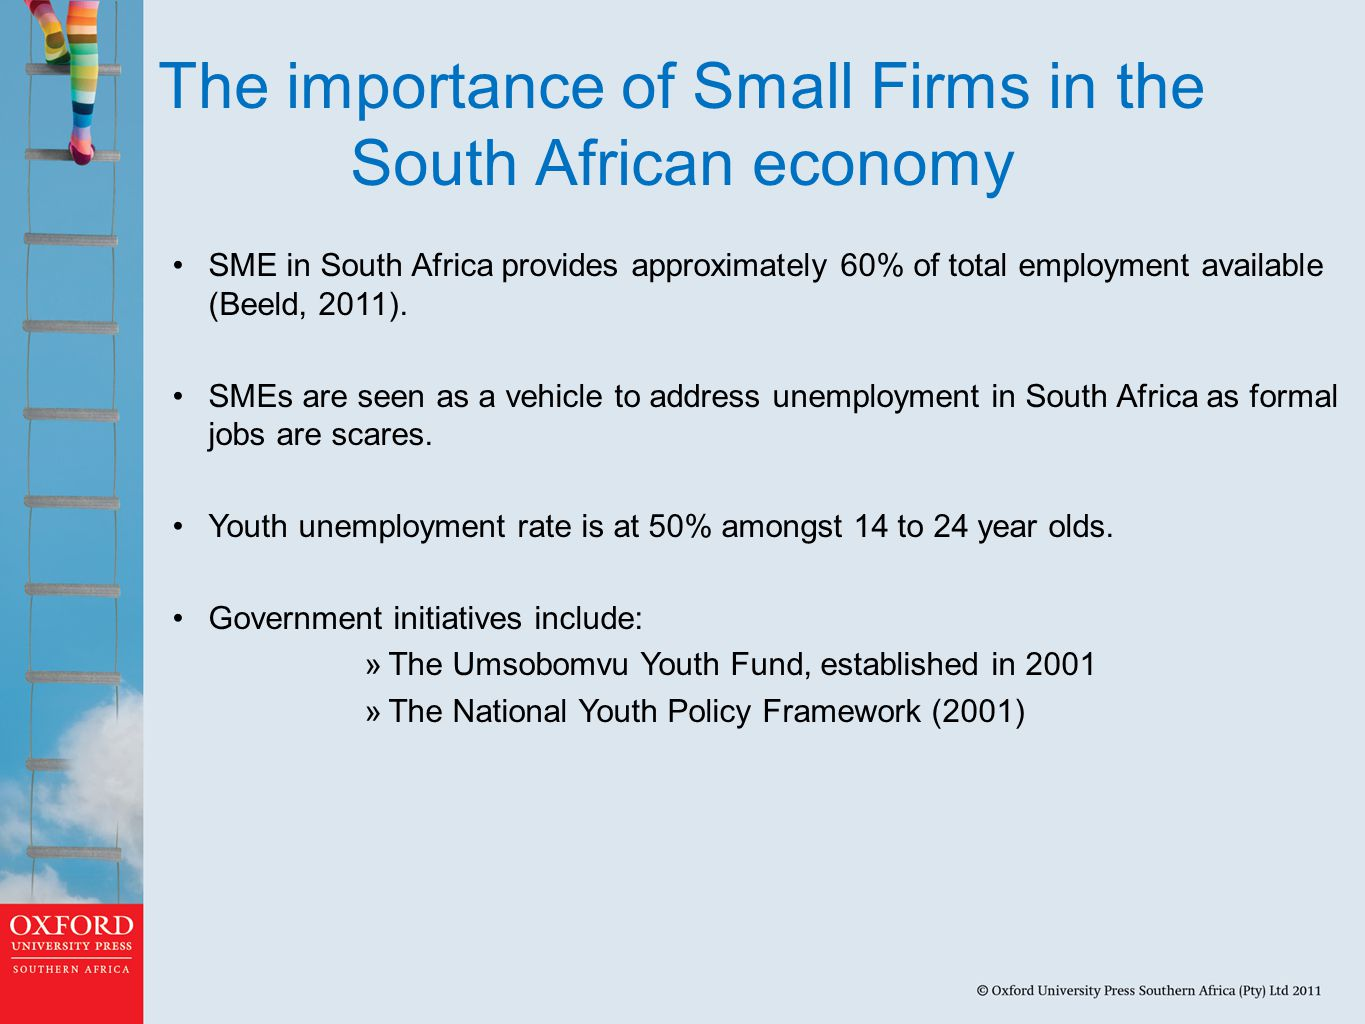 The importance of Small Firms in the South African economy